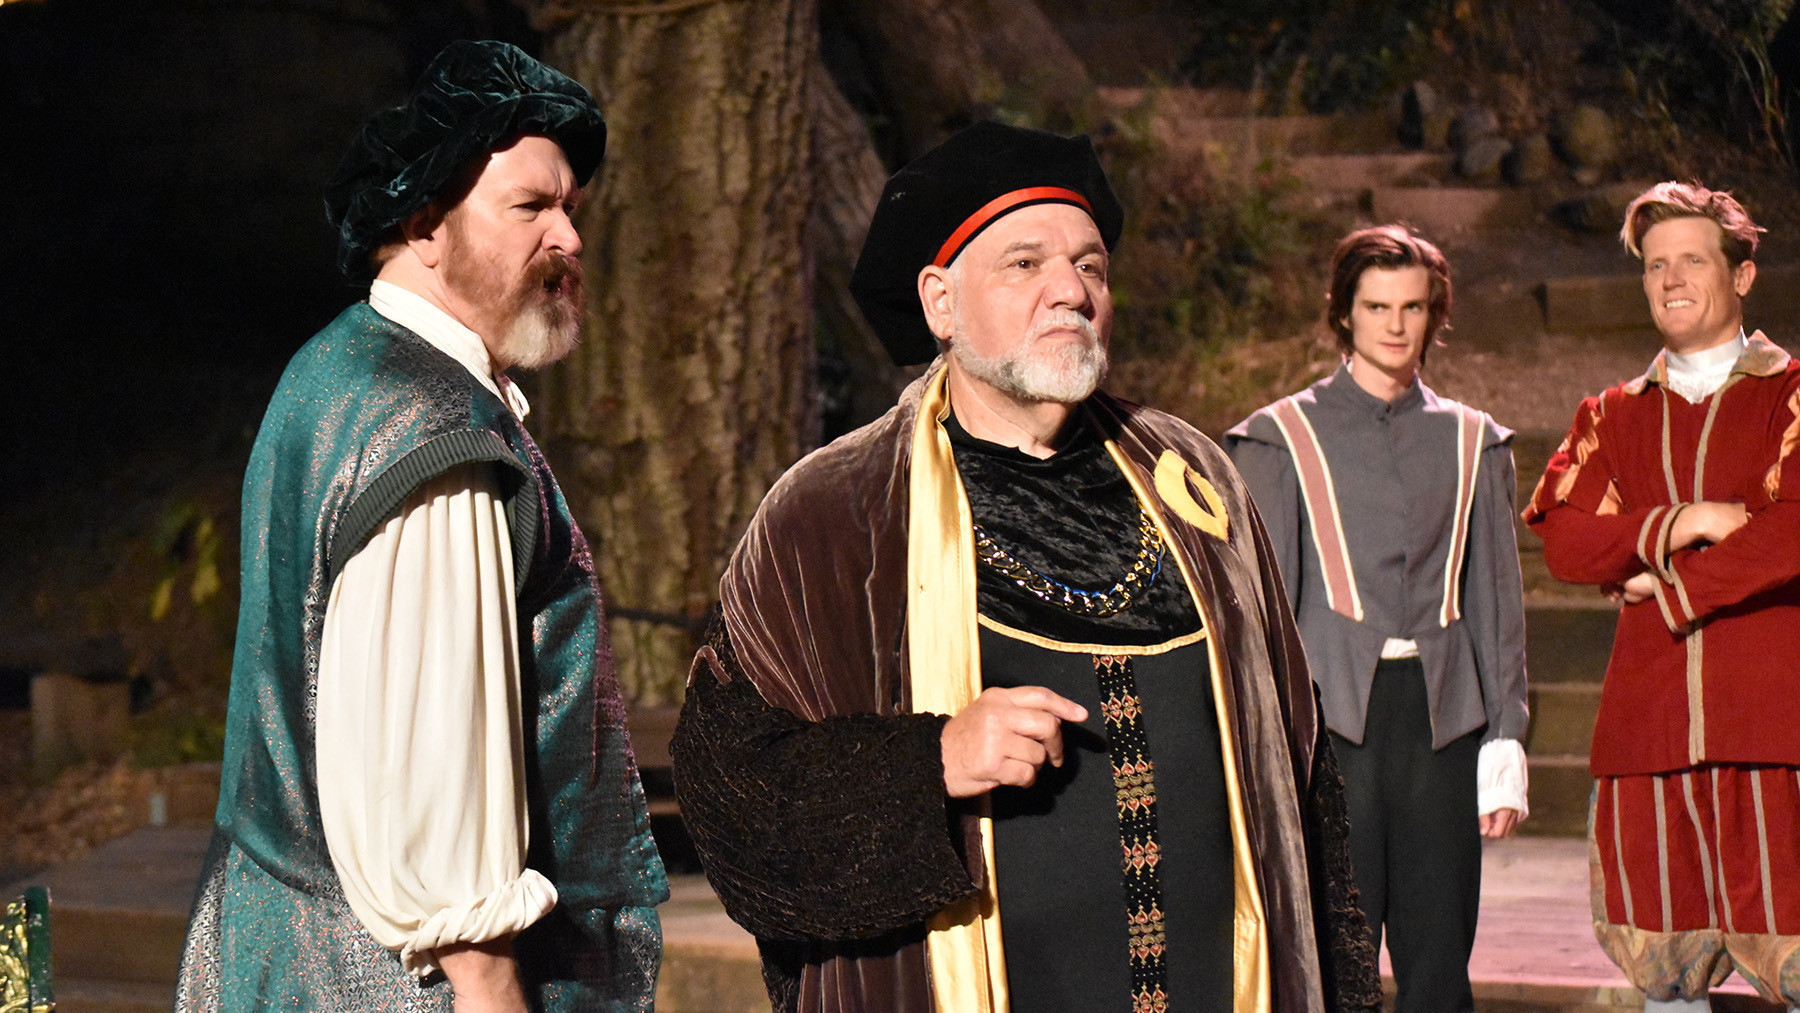 anti semitism in the merchant of venice The merchant of venice the question of whether or not shakespeare endorses the anti-semitism of the christian characters in the play has been much debated jews in shakespeare's england were a marginalized group.